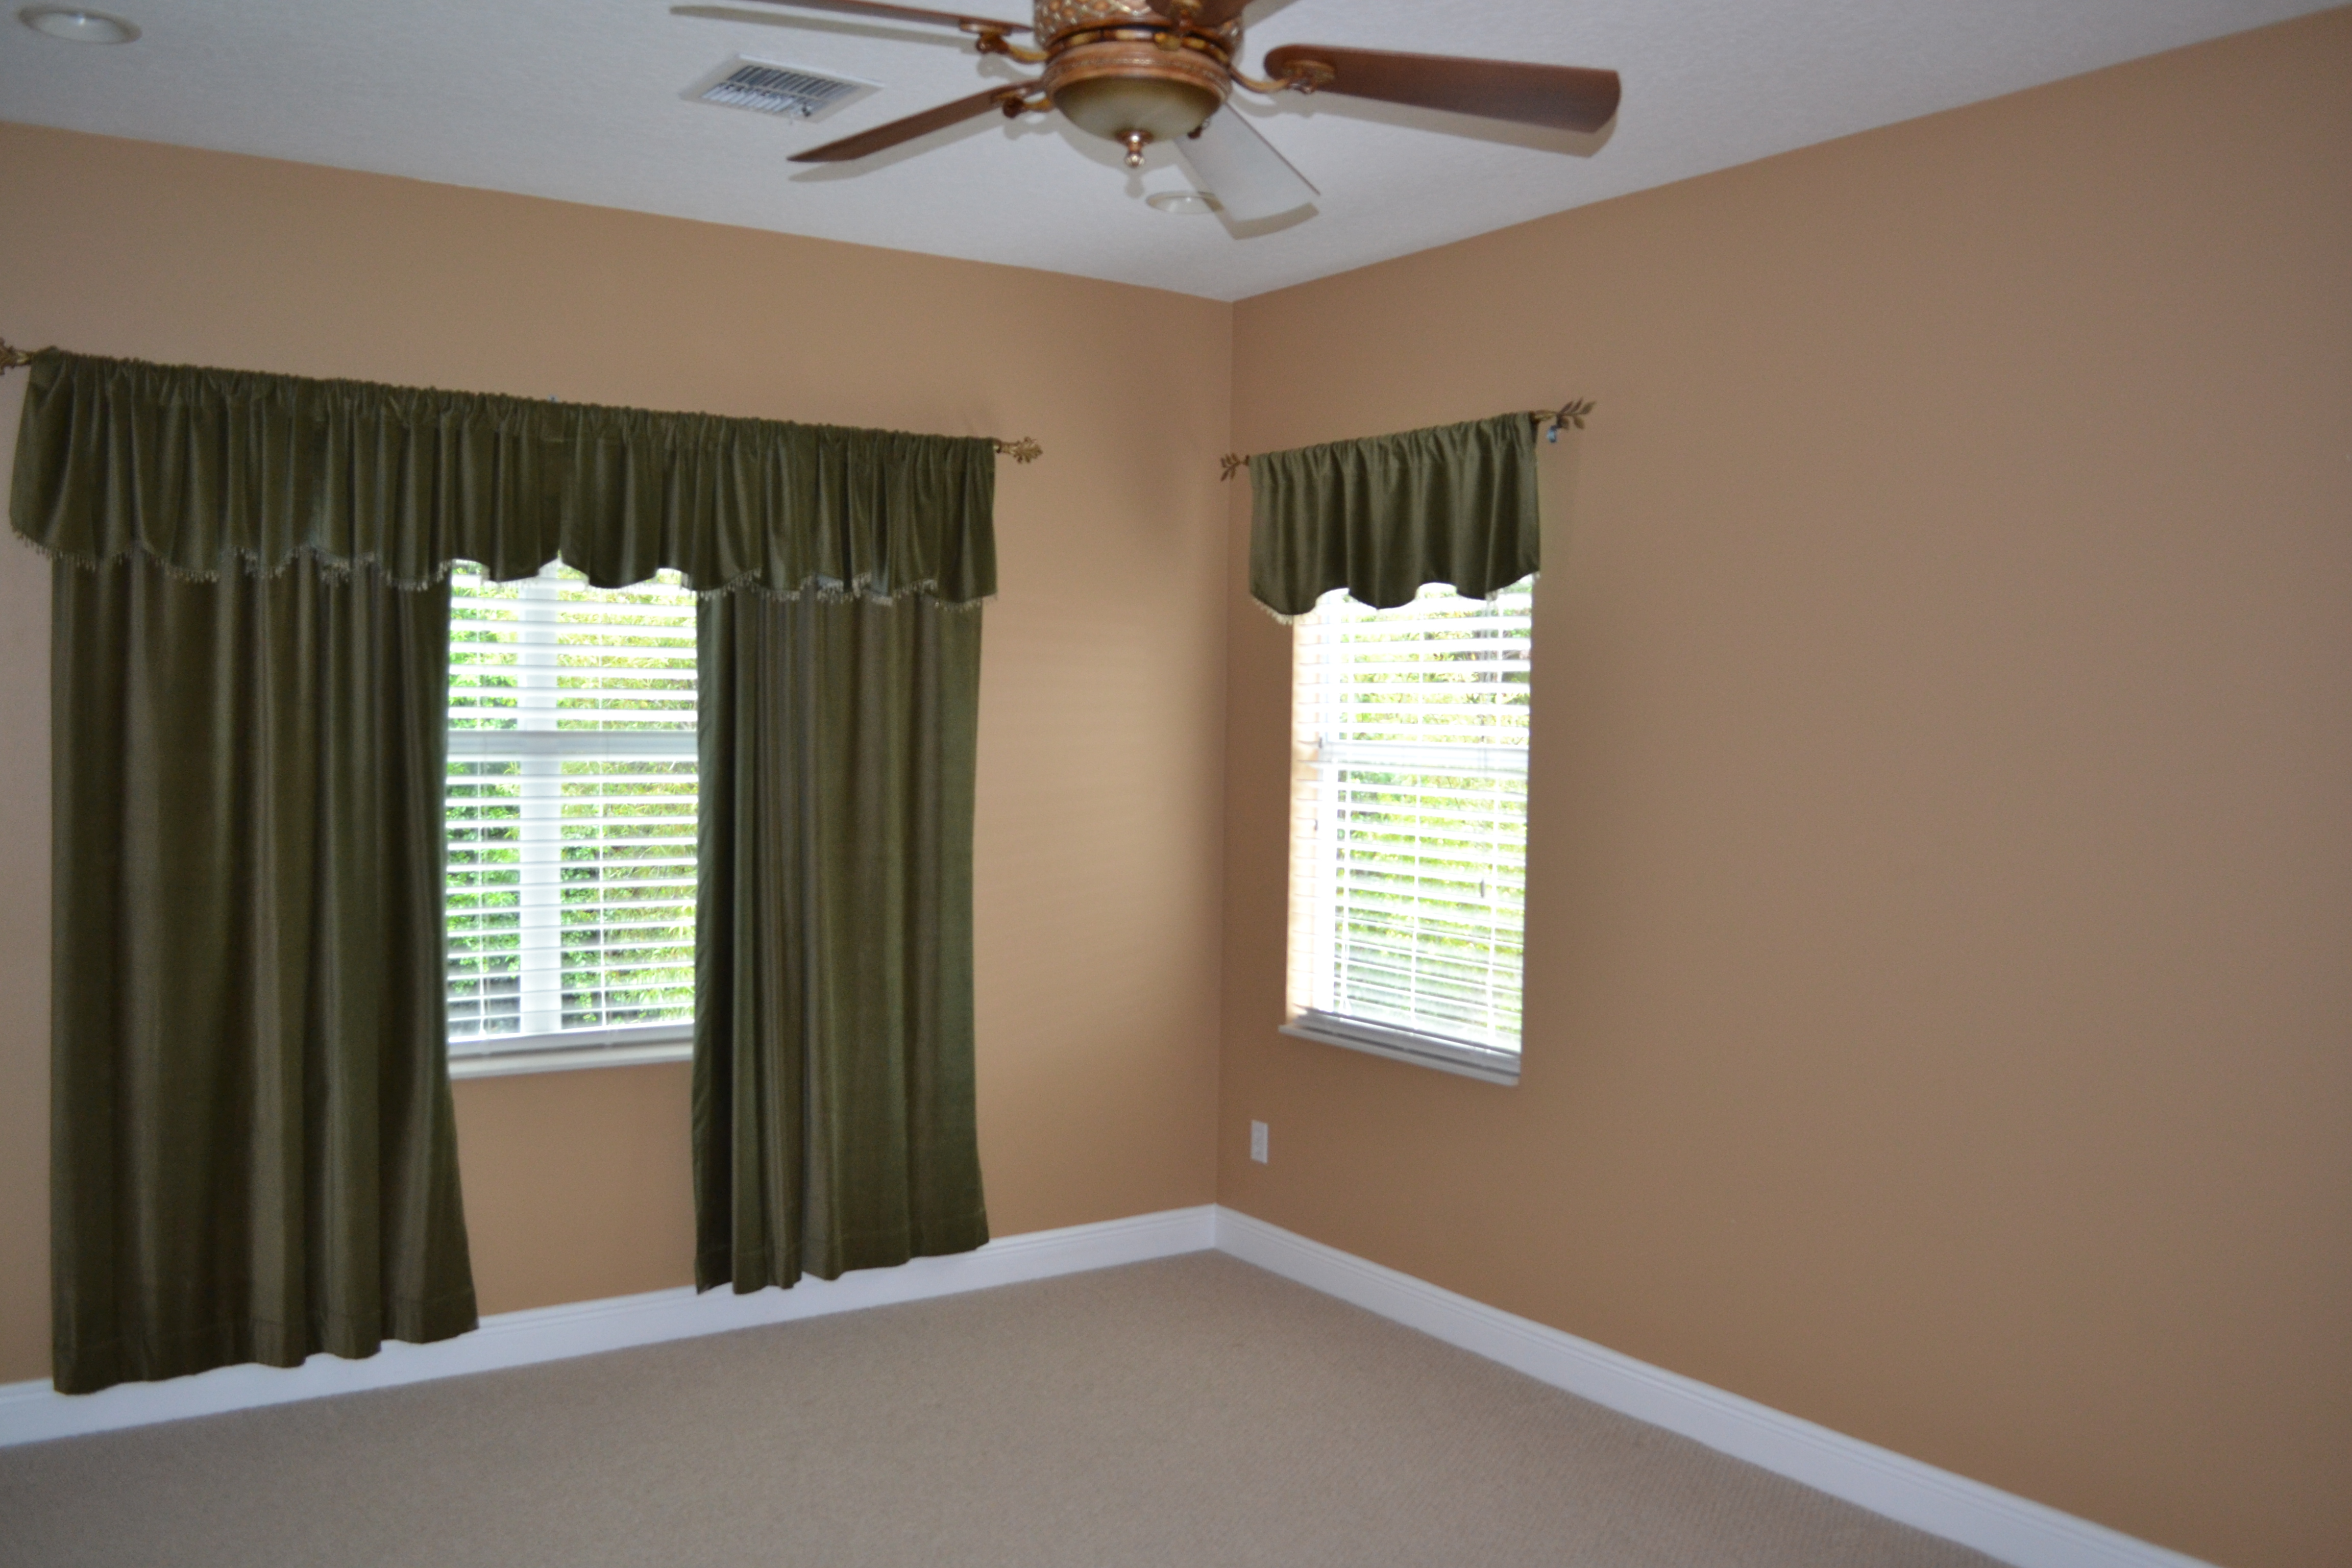 Photo of 5582 Whispering Woods Pt, Sanford, FL, 32771